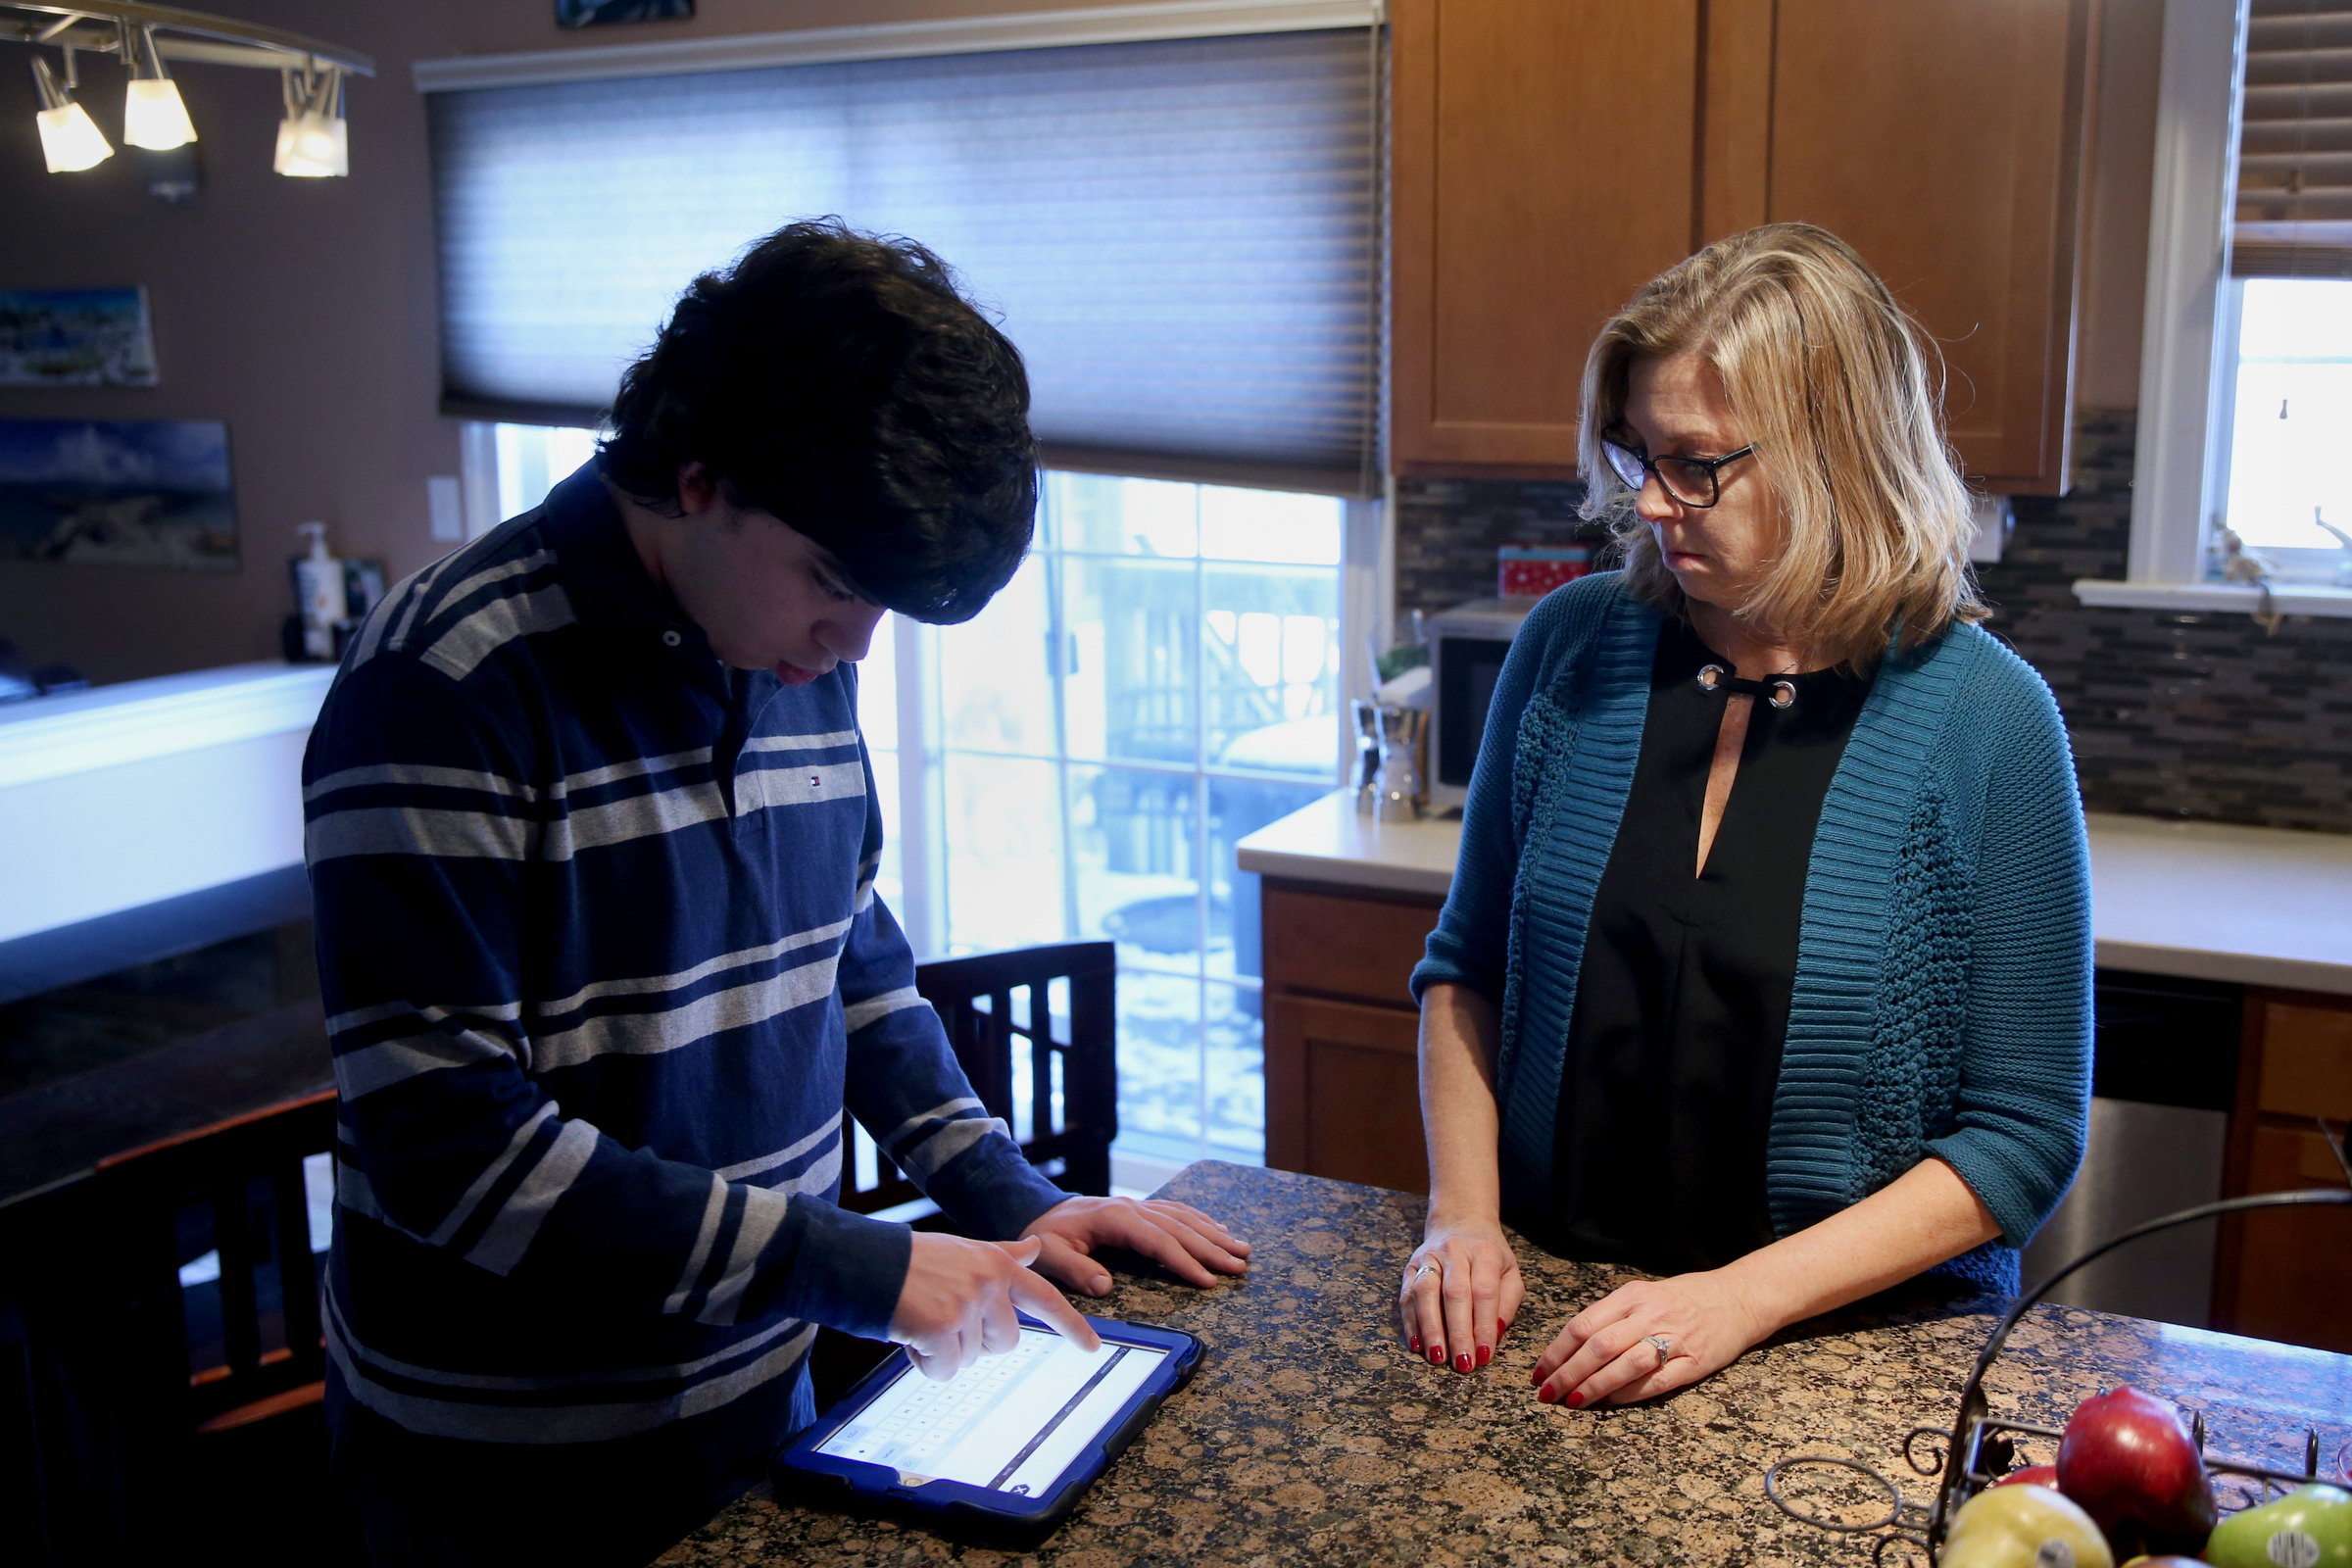 Stefan Velocci, 21, left, uses an iPad with the Proloquo2Go alternative communication app with his mom, Karen, at their home